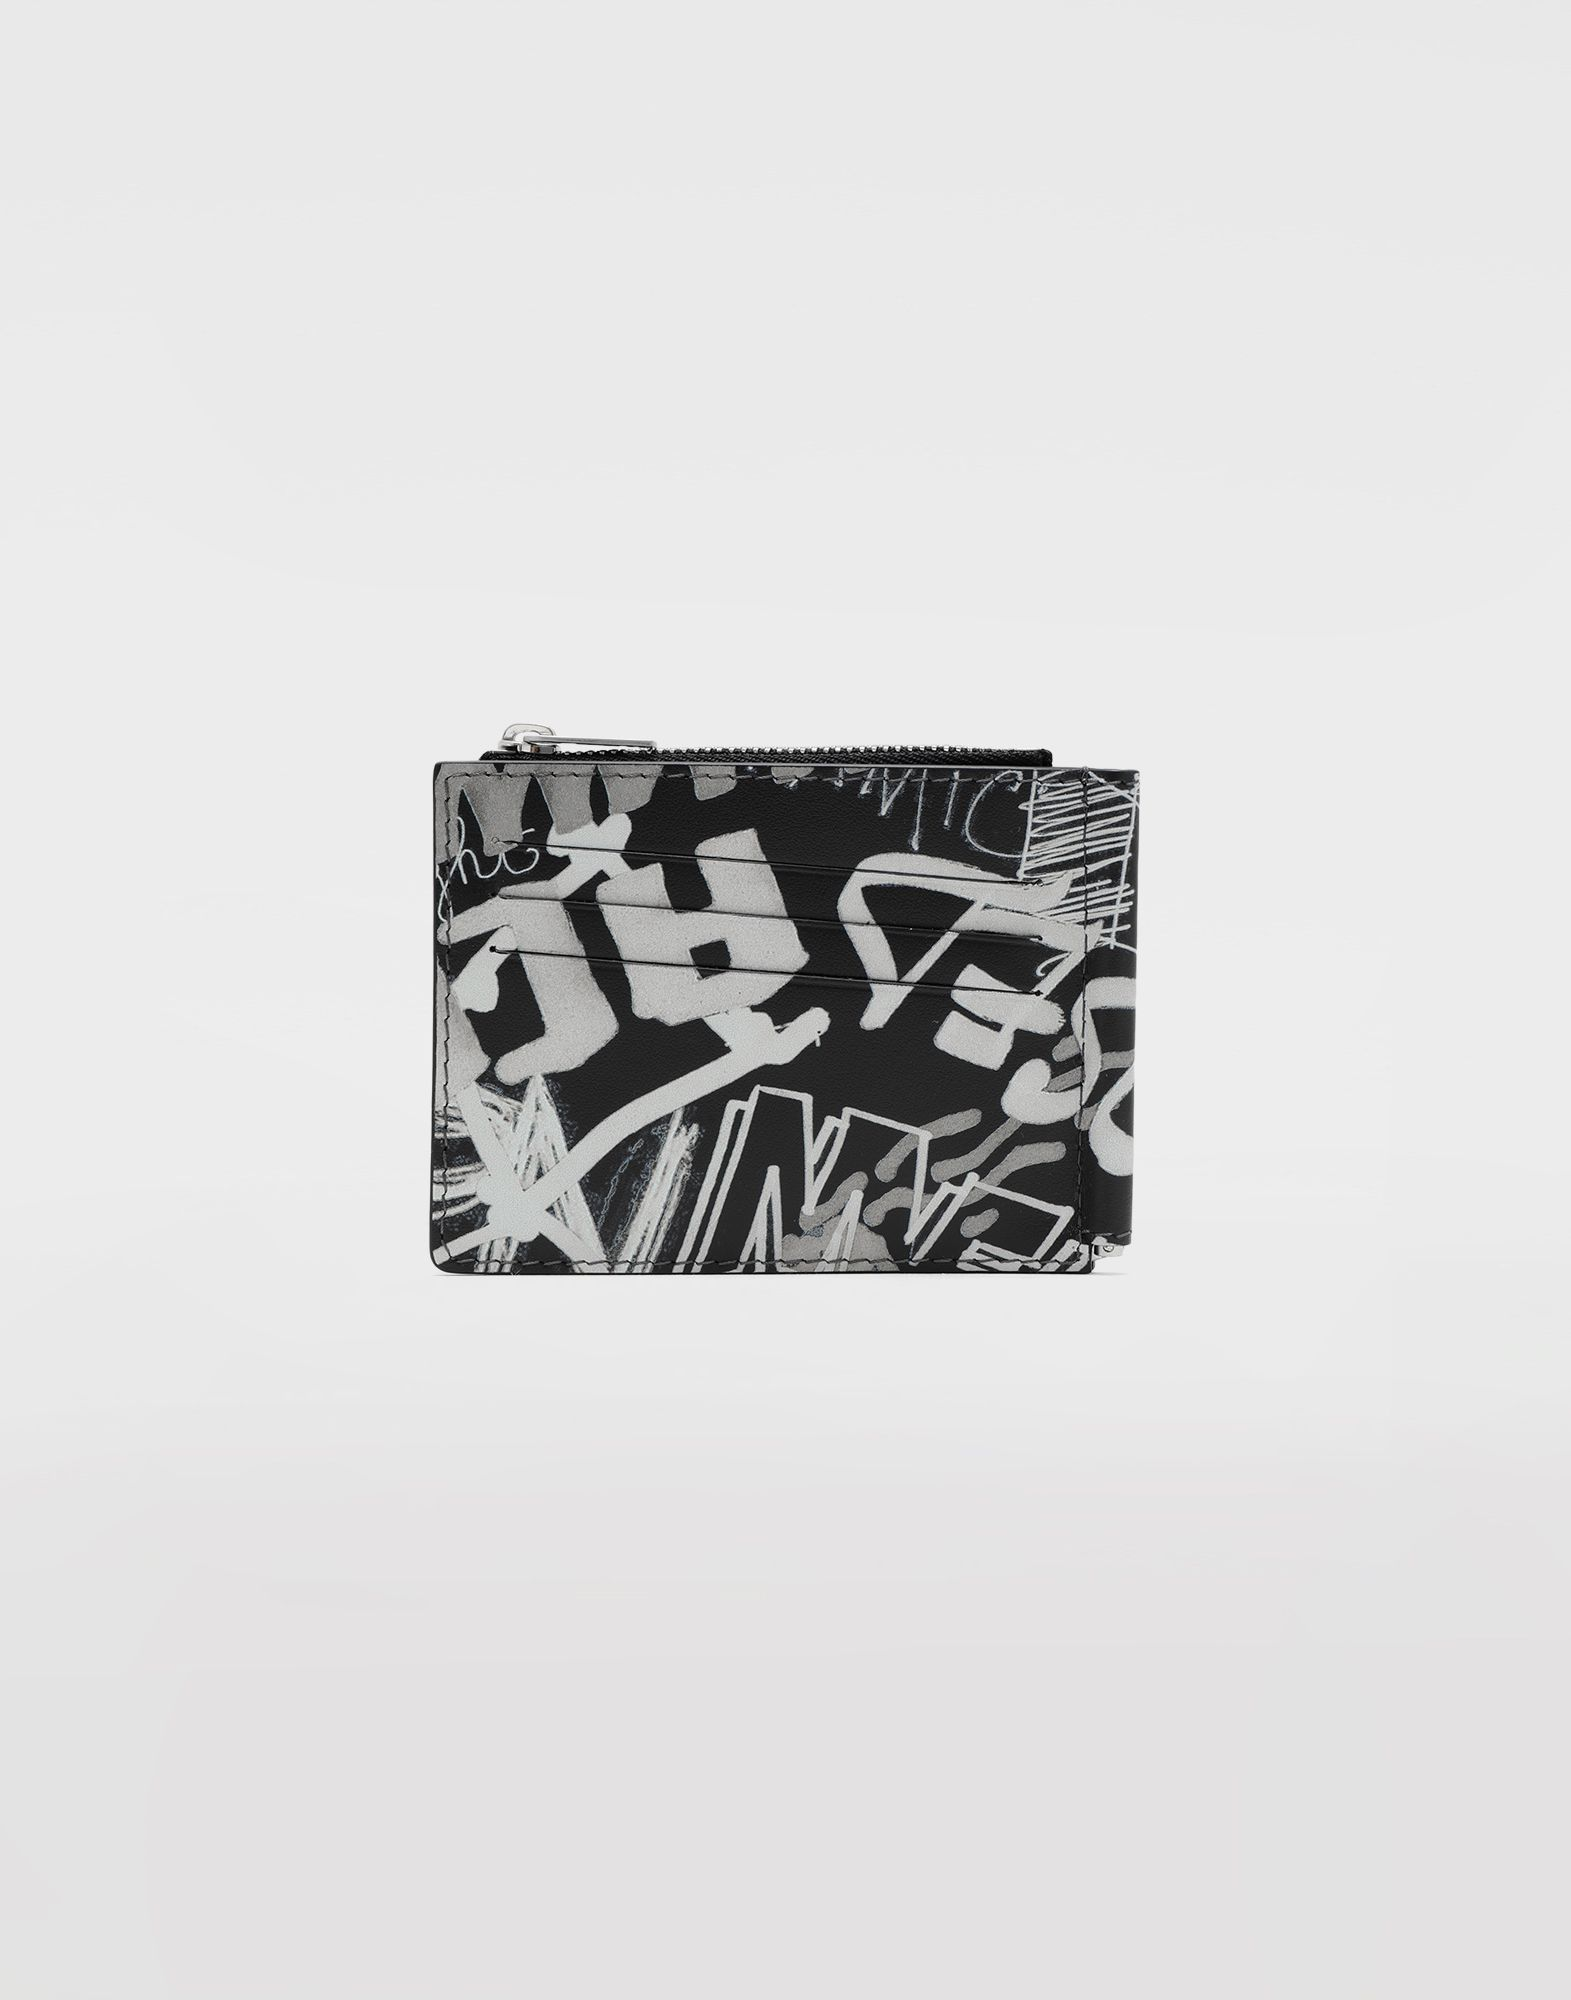 MAISON MARGIELA Graffiti zip wallet Wallets Man f